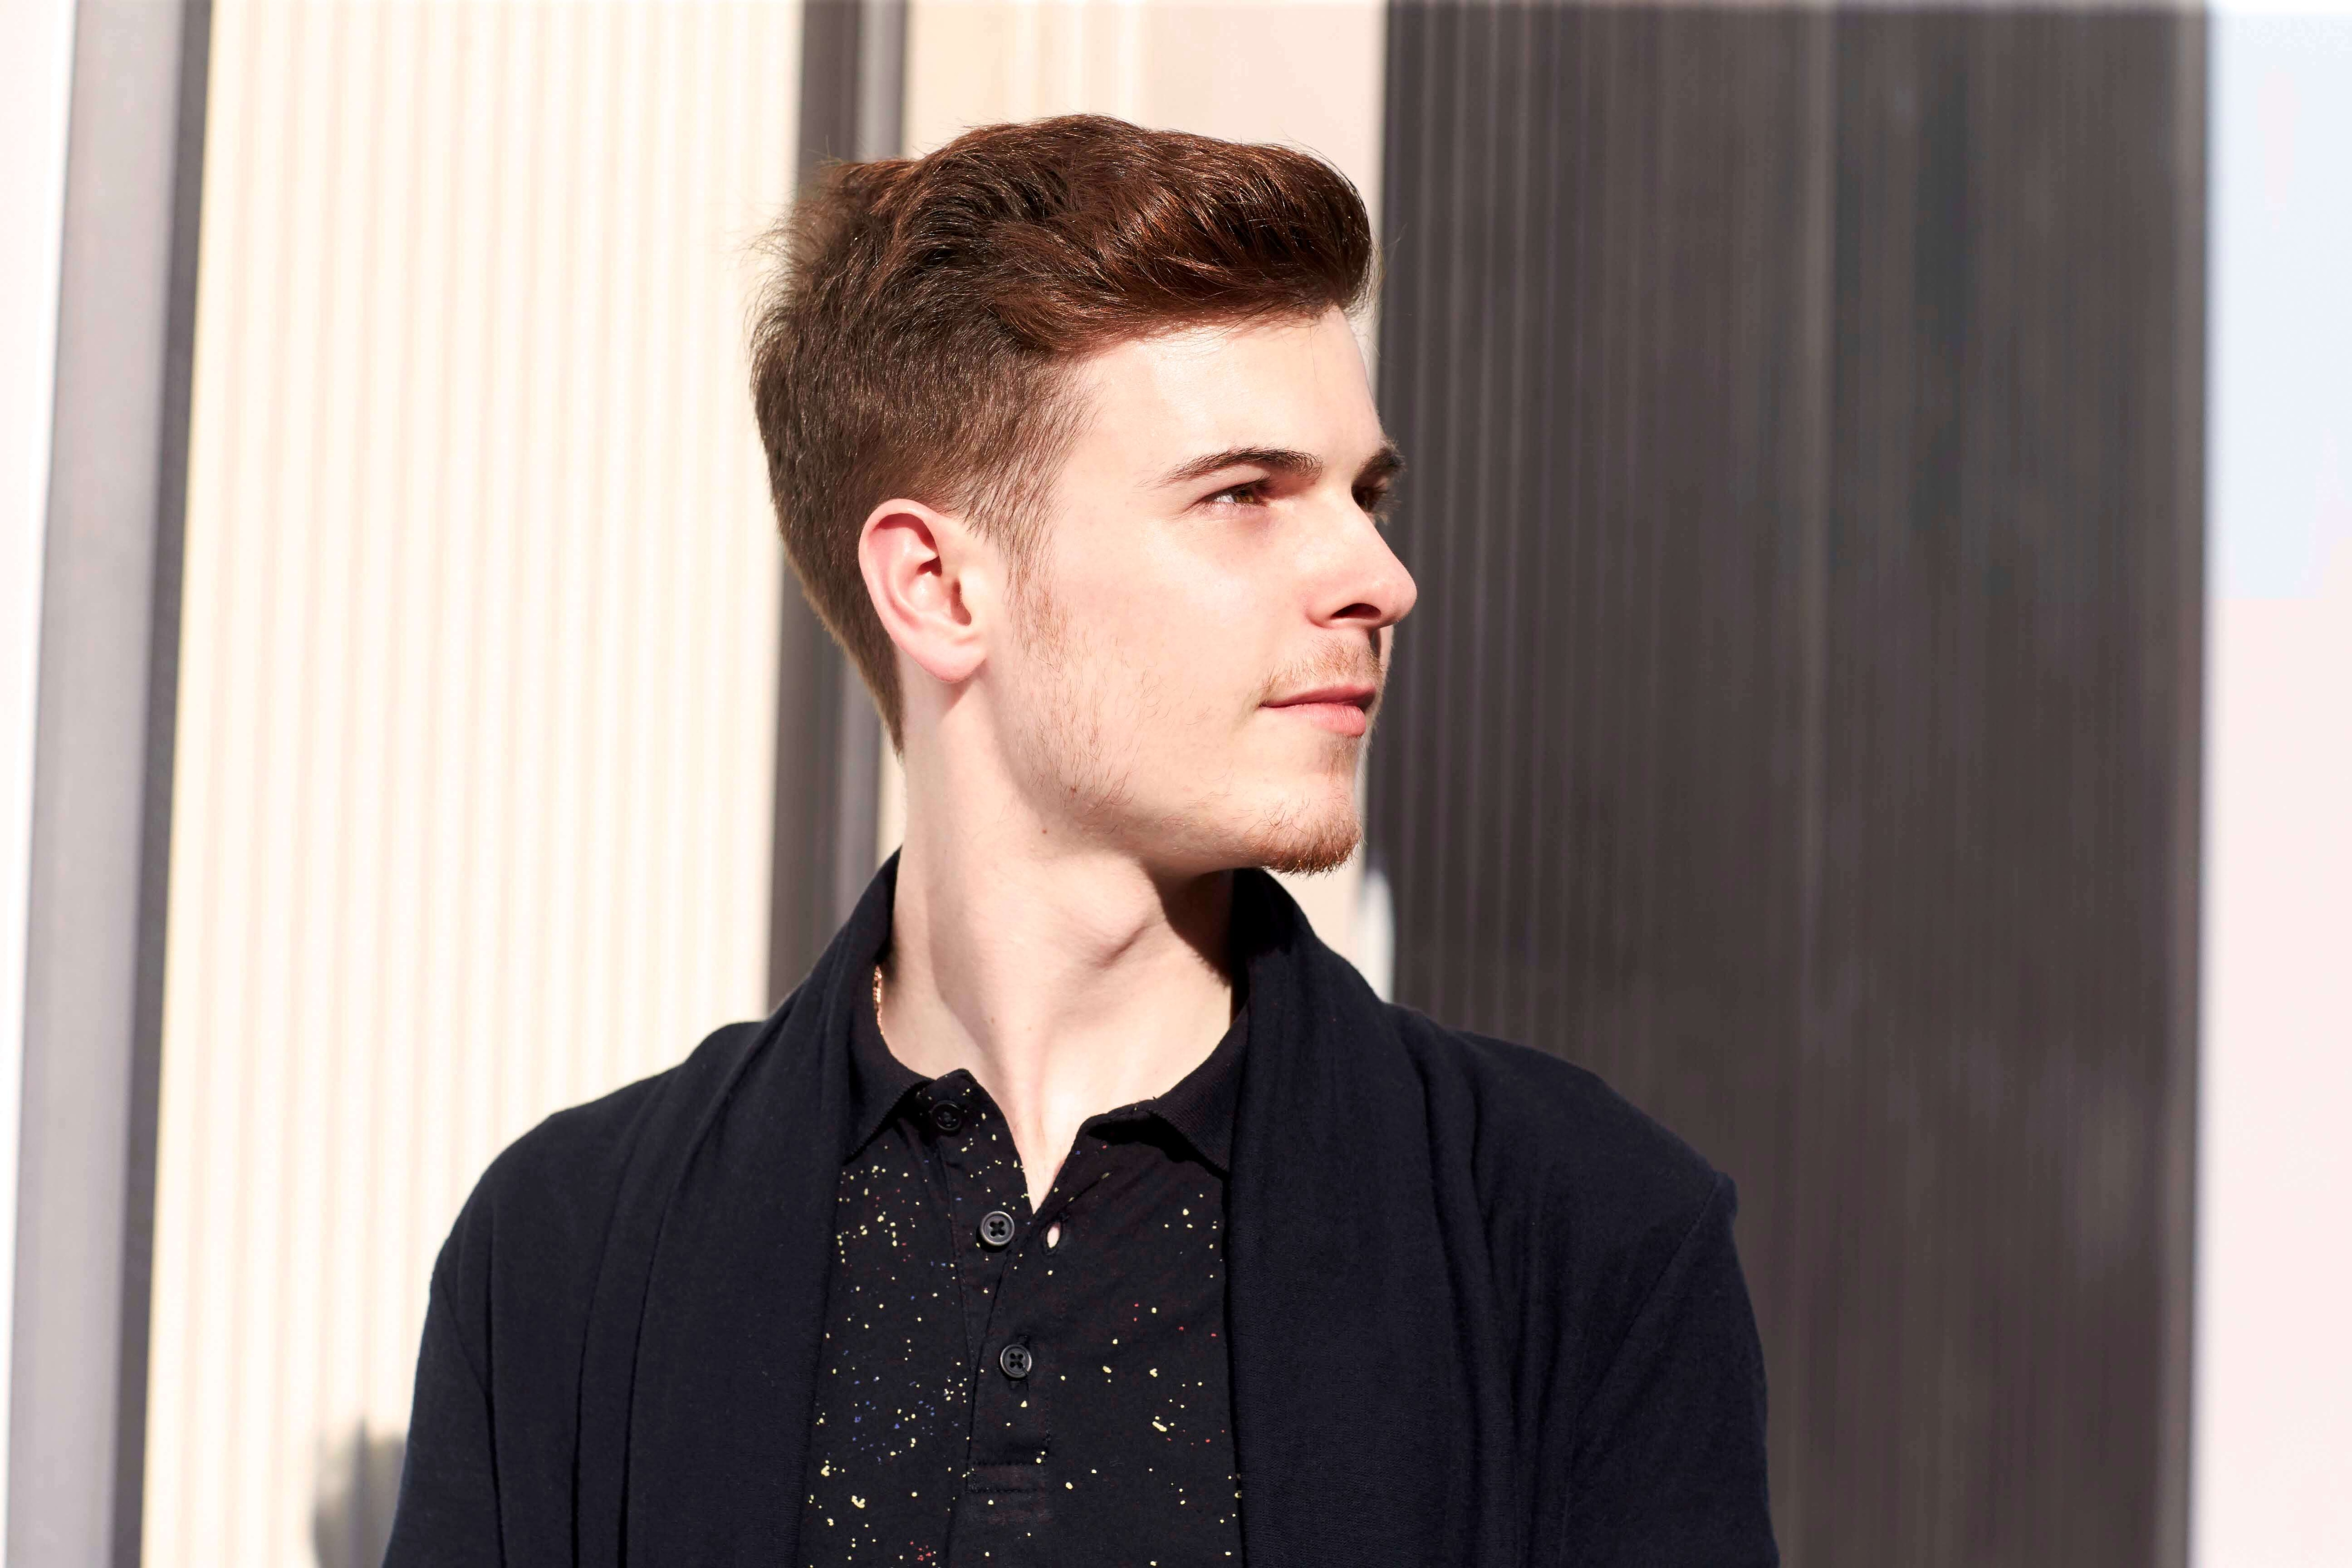 Hairstyles For Men With Thin Hair: Cool And Camouflage-y Hairstyles For Men With Thin Hair